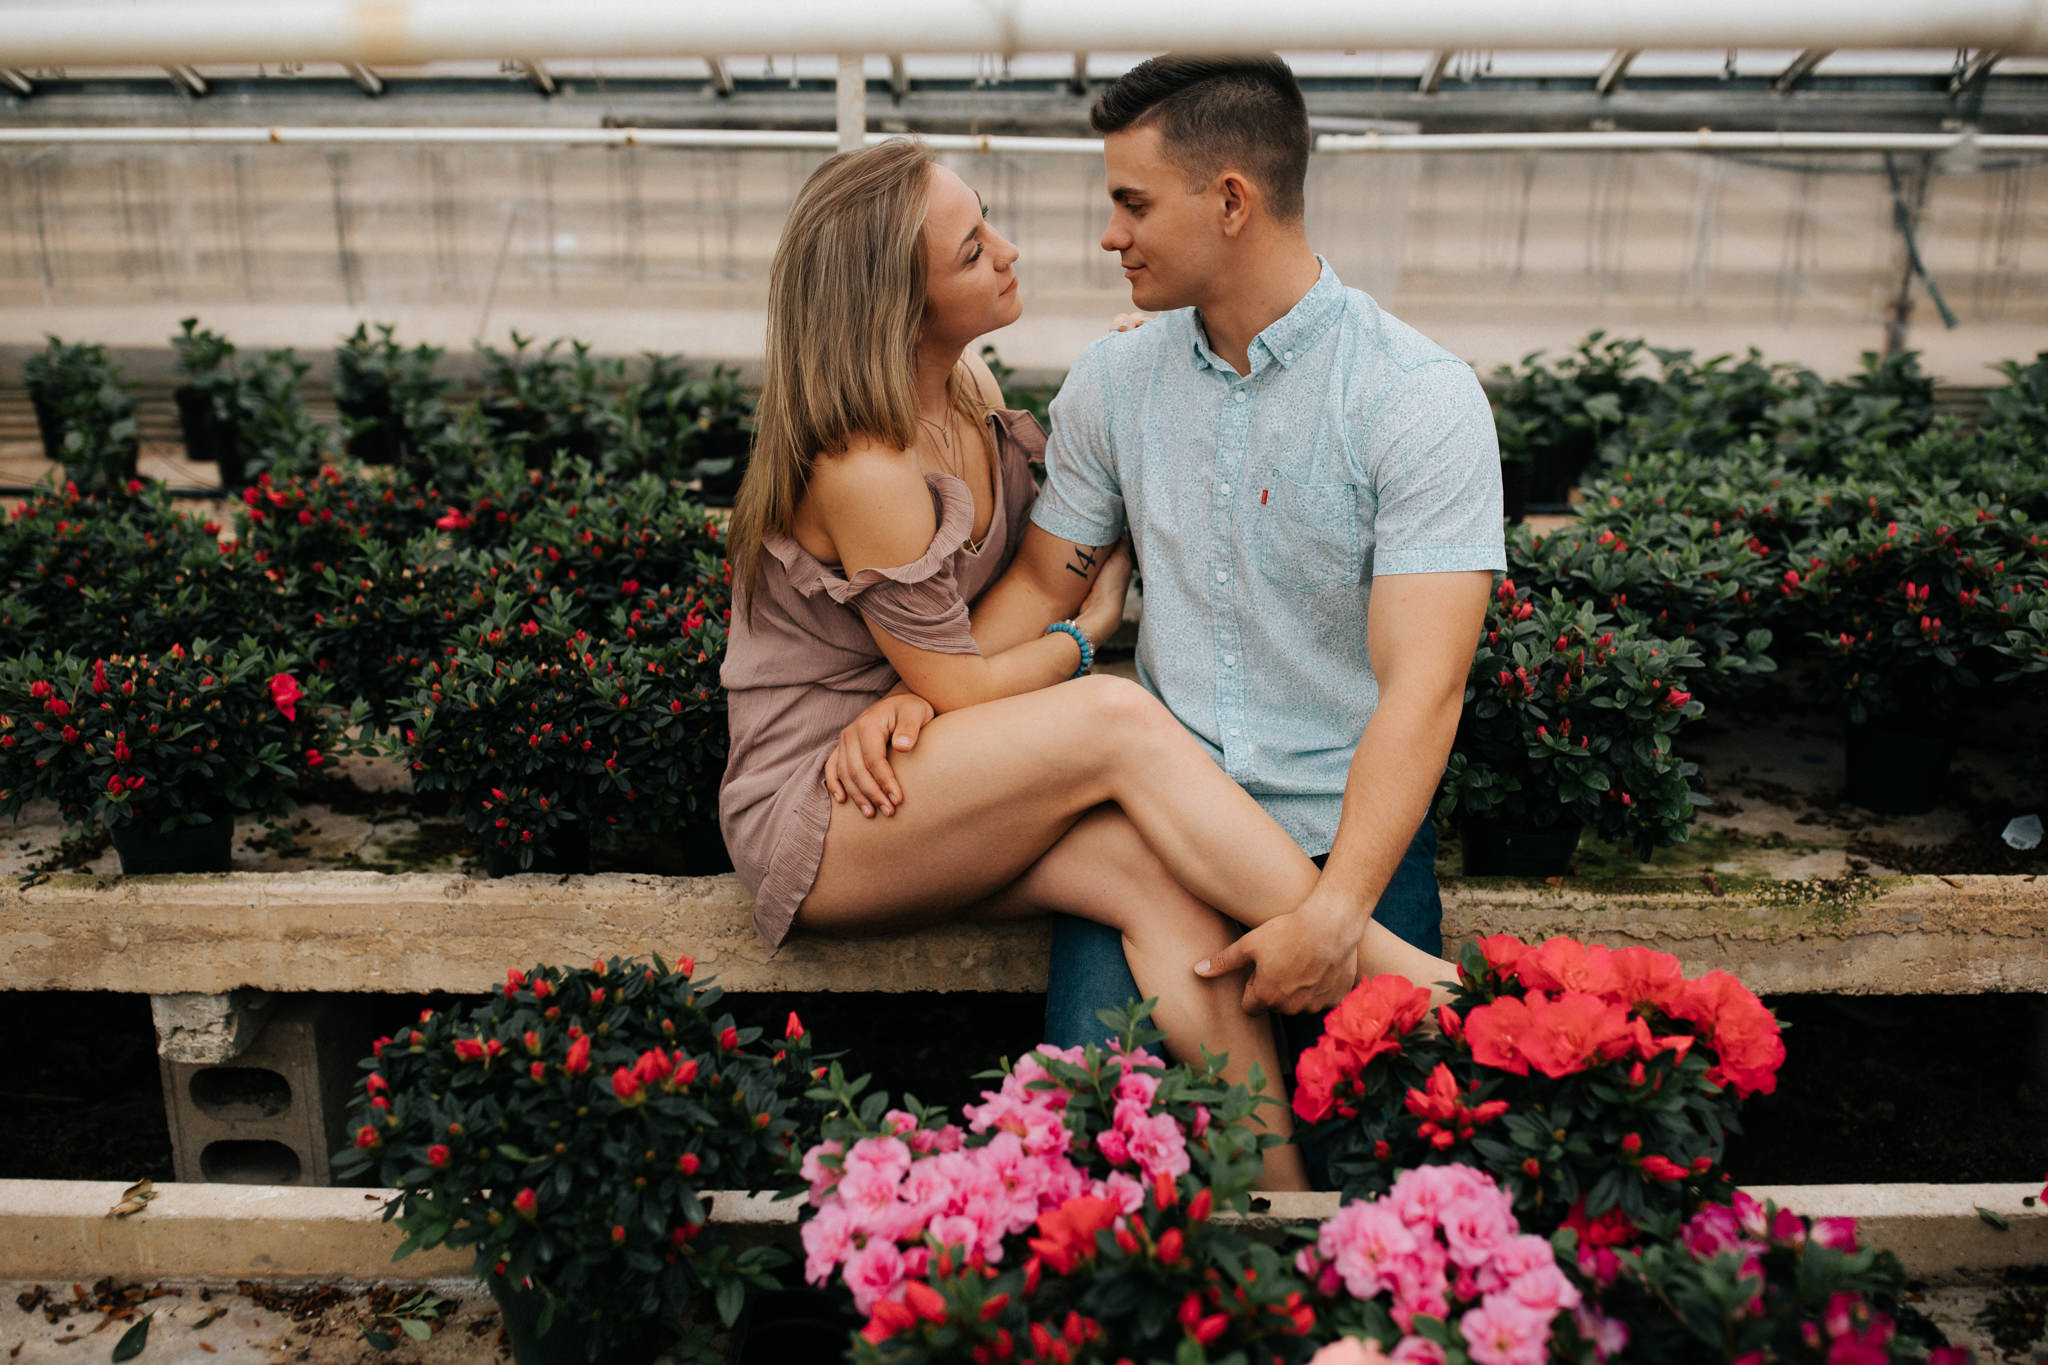 memphis-engagement-photographer-thewarmtharoundyou-greenhouse-engagement-pictures (104 of 118).jpg